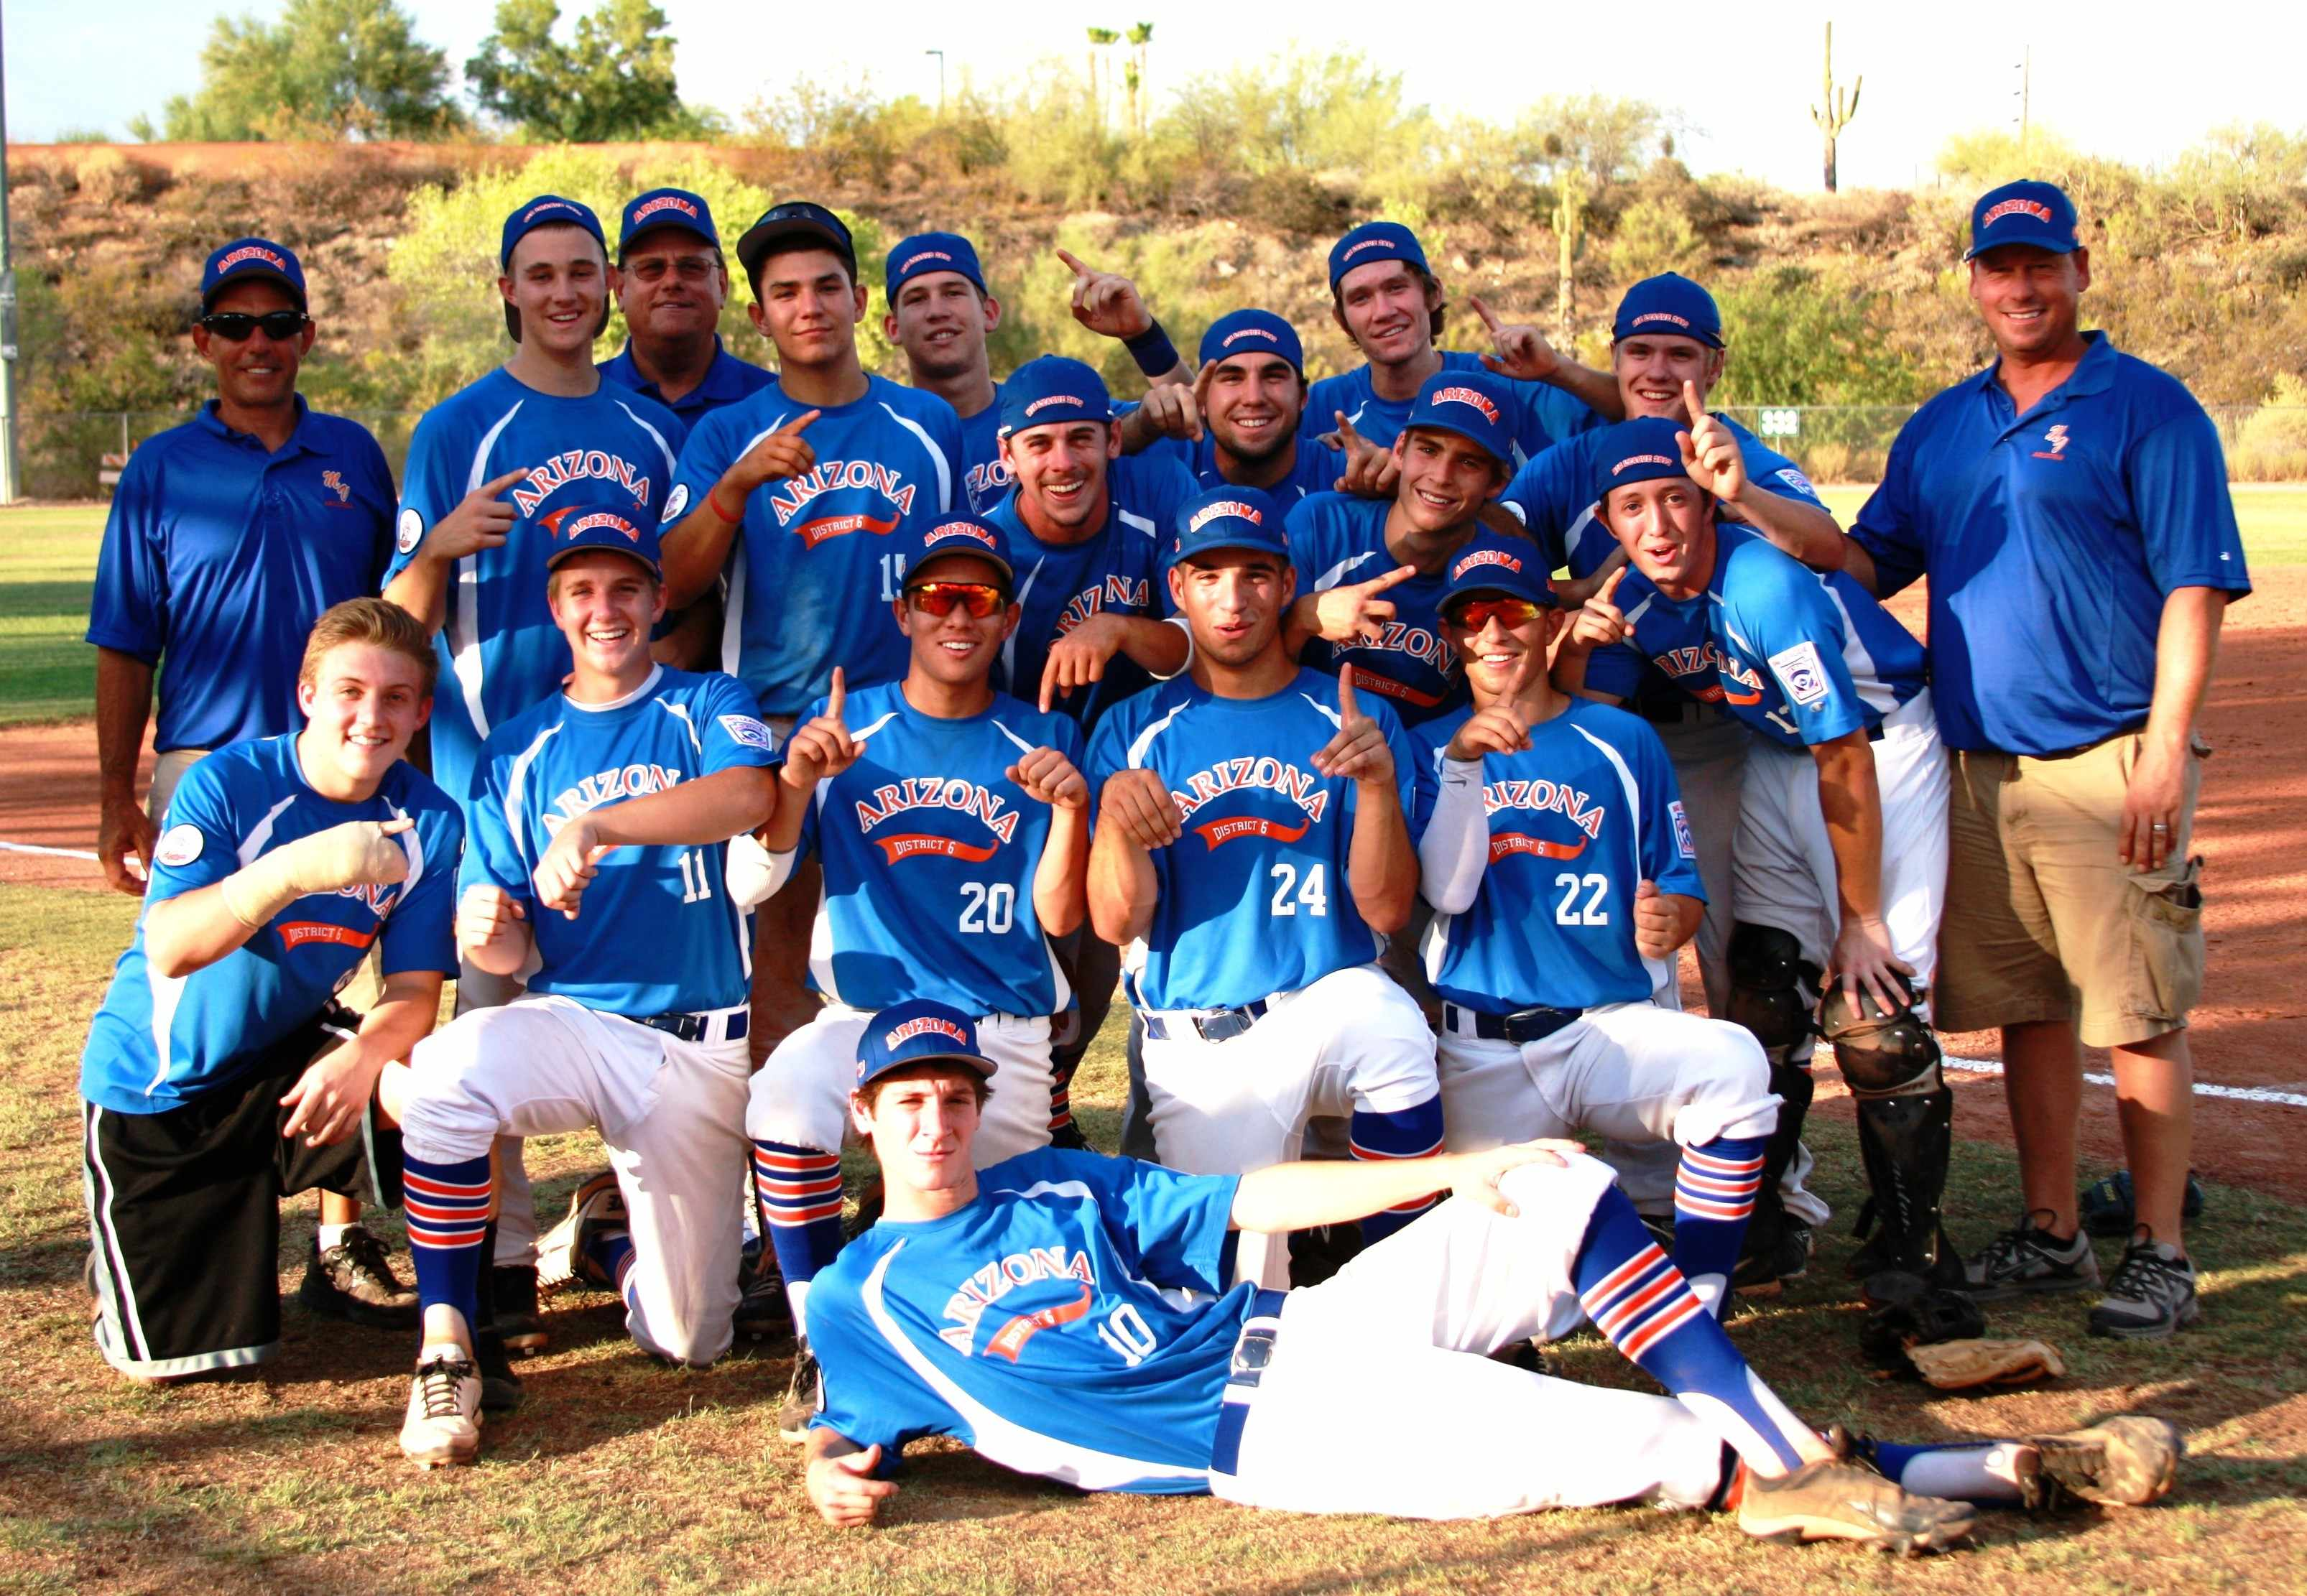 2012 AZ Big League Baseball Champs.jpg